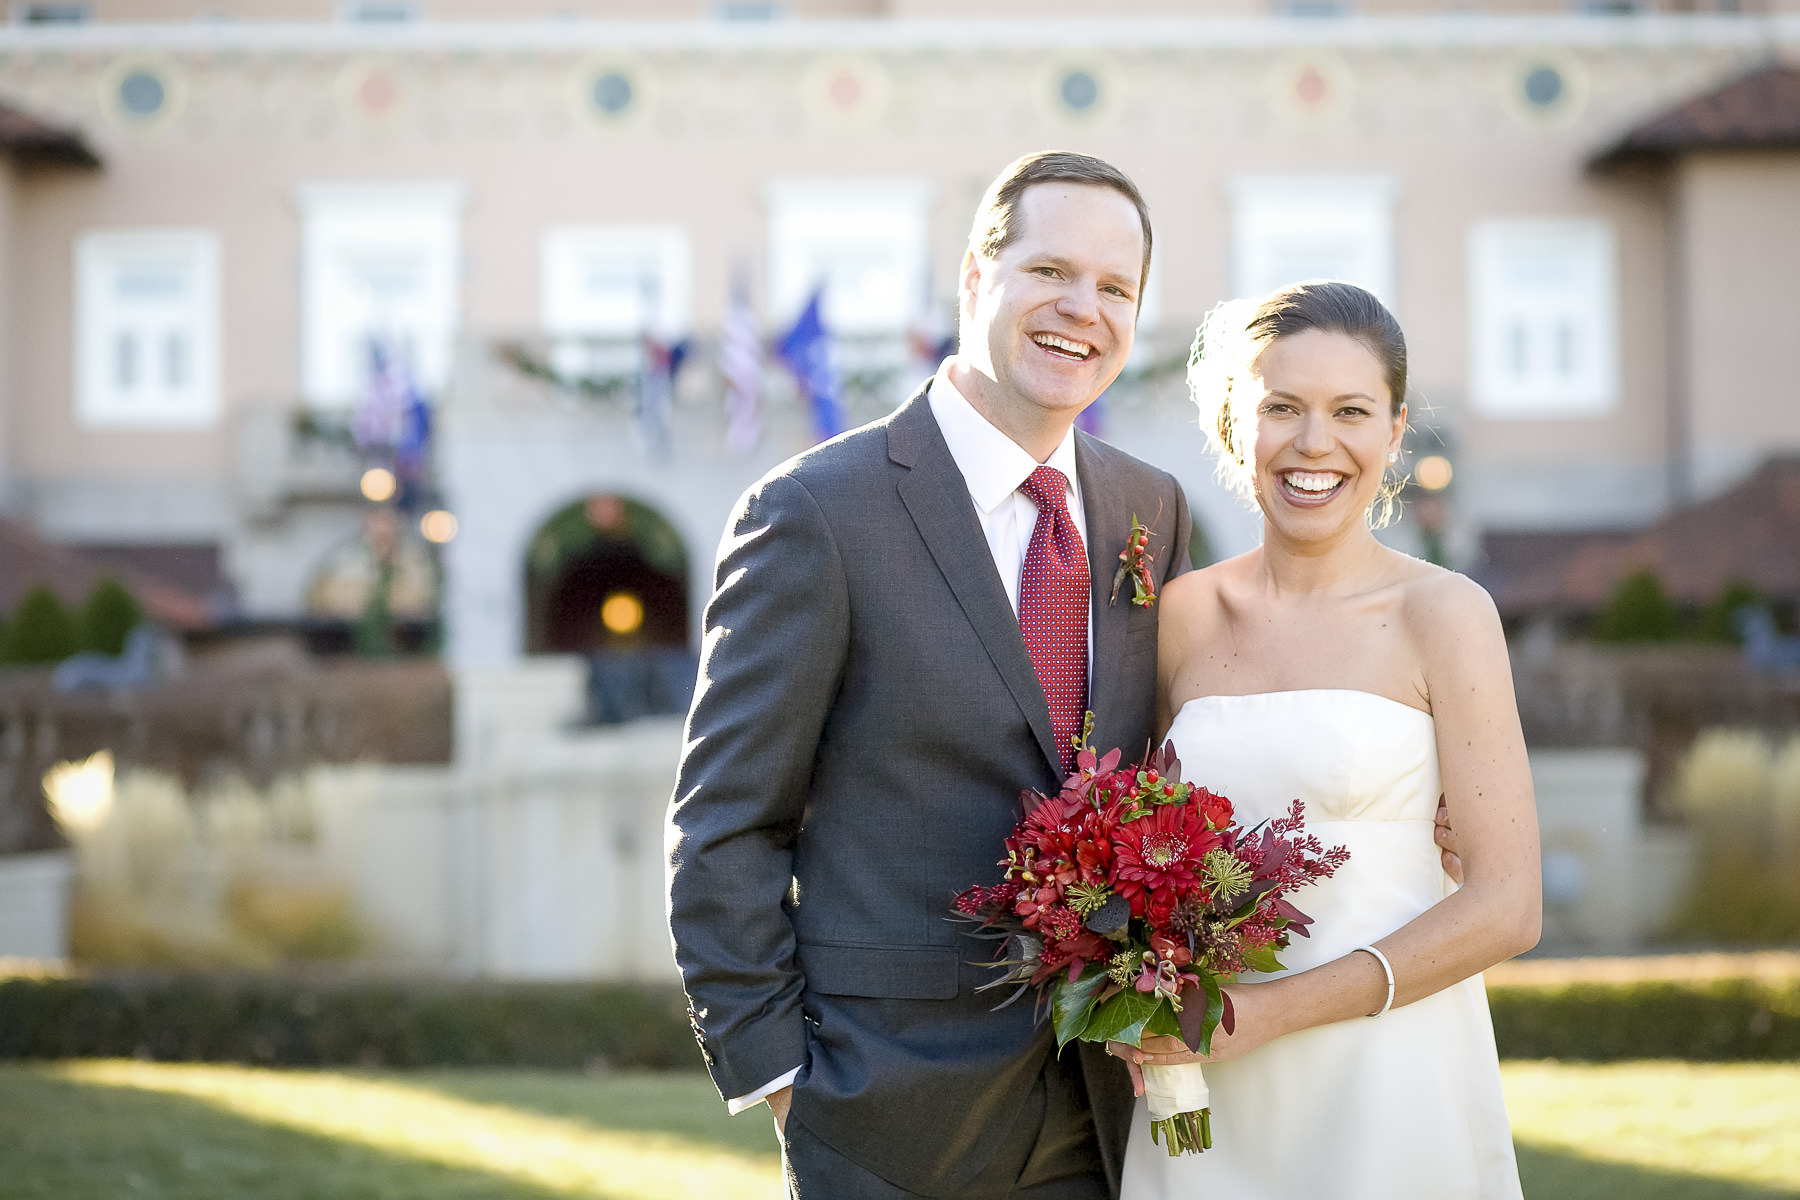 Bride and groom with red flowers, wedding dress and suit in front of the entrance to The Broadmoor.